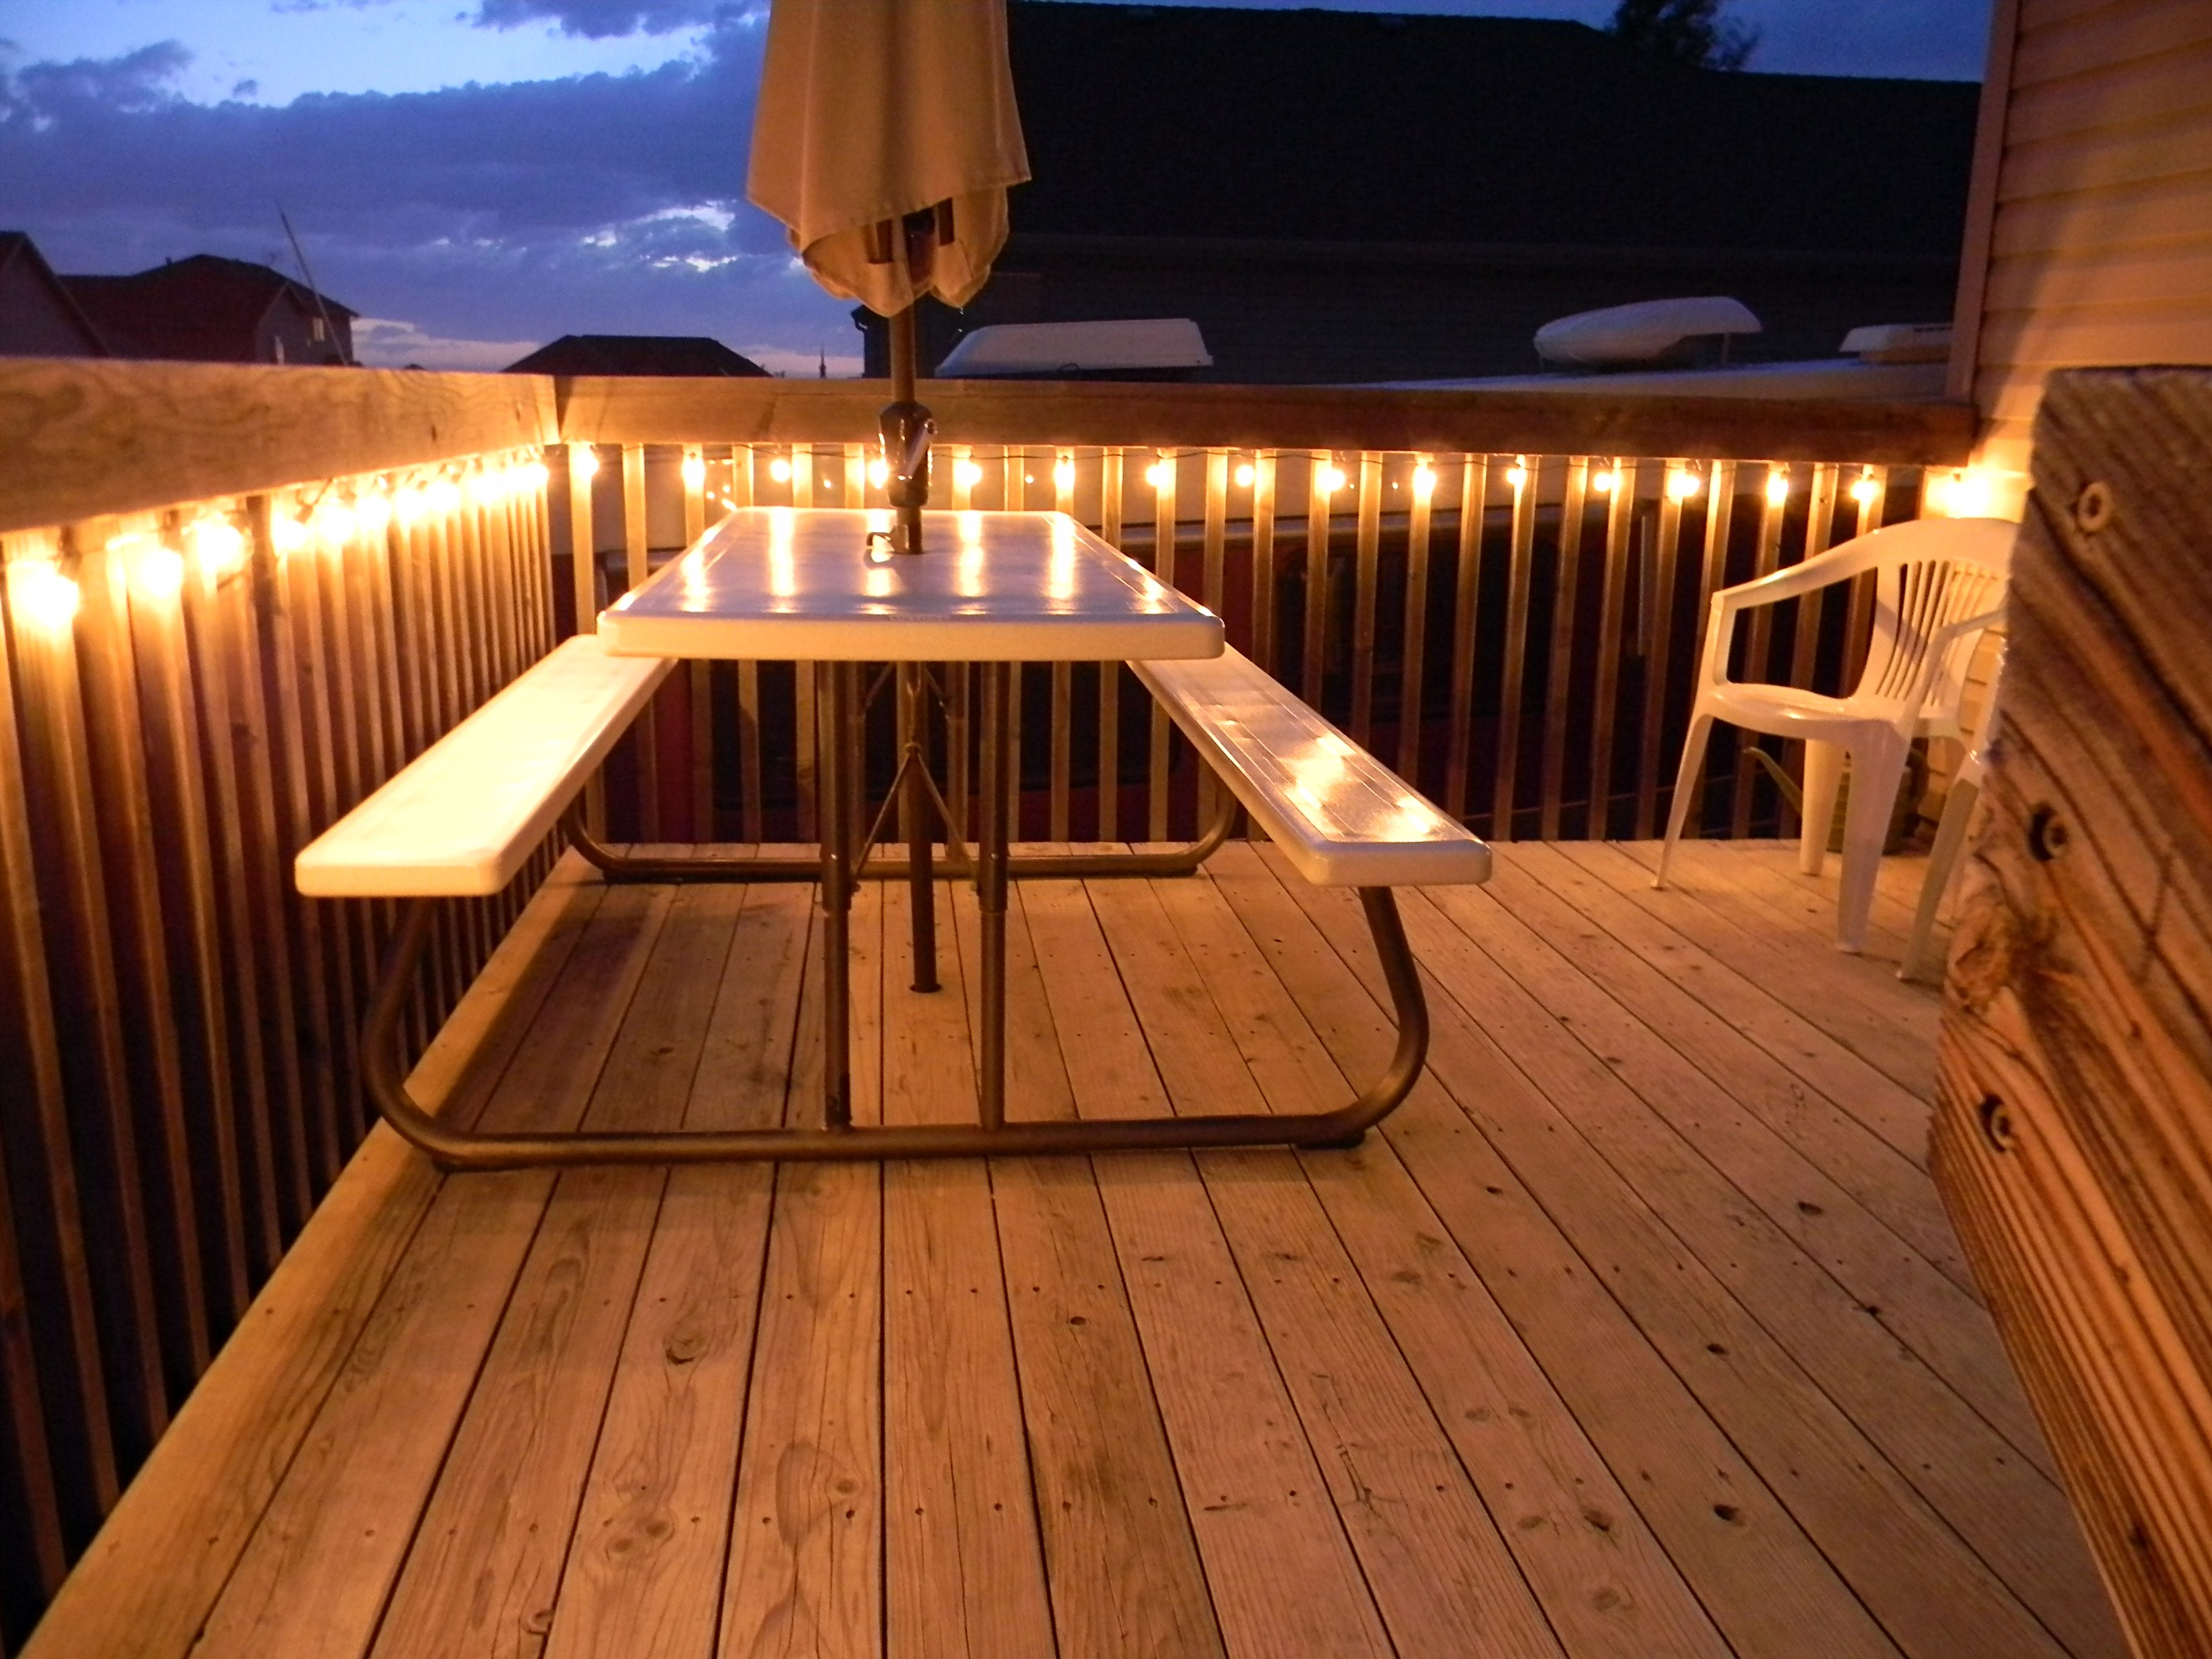 Deck up lights